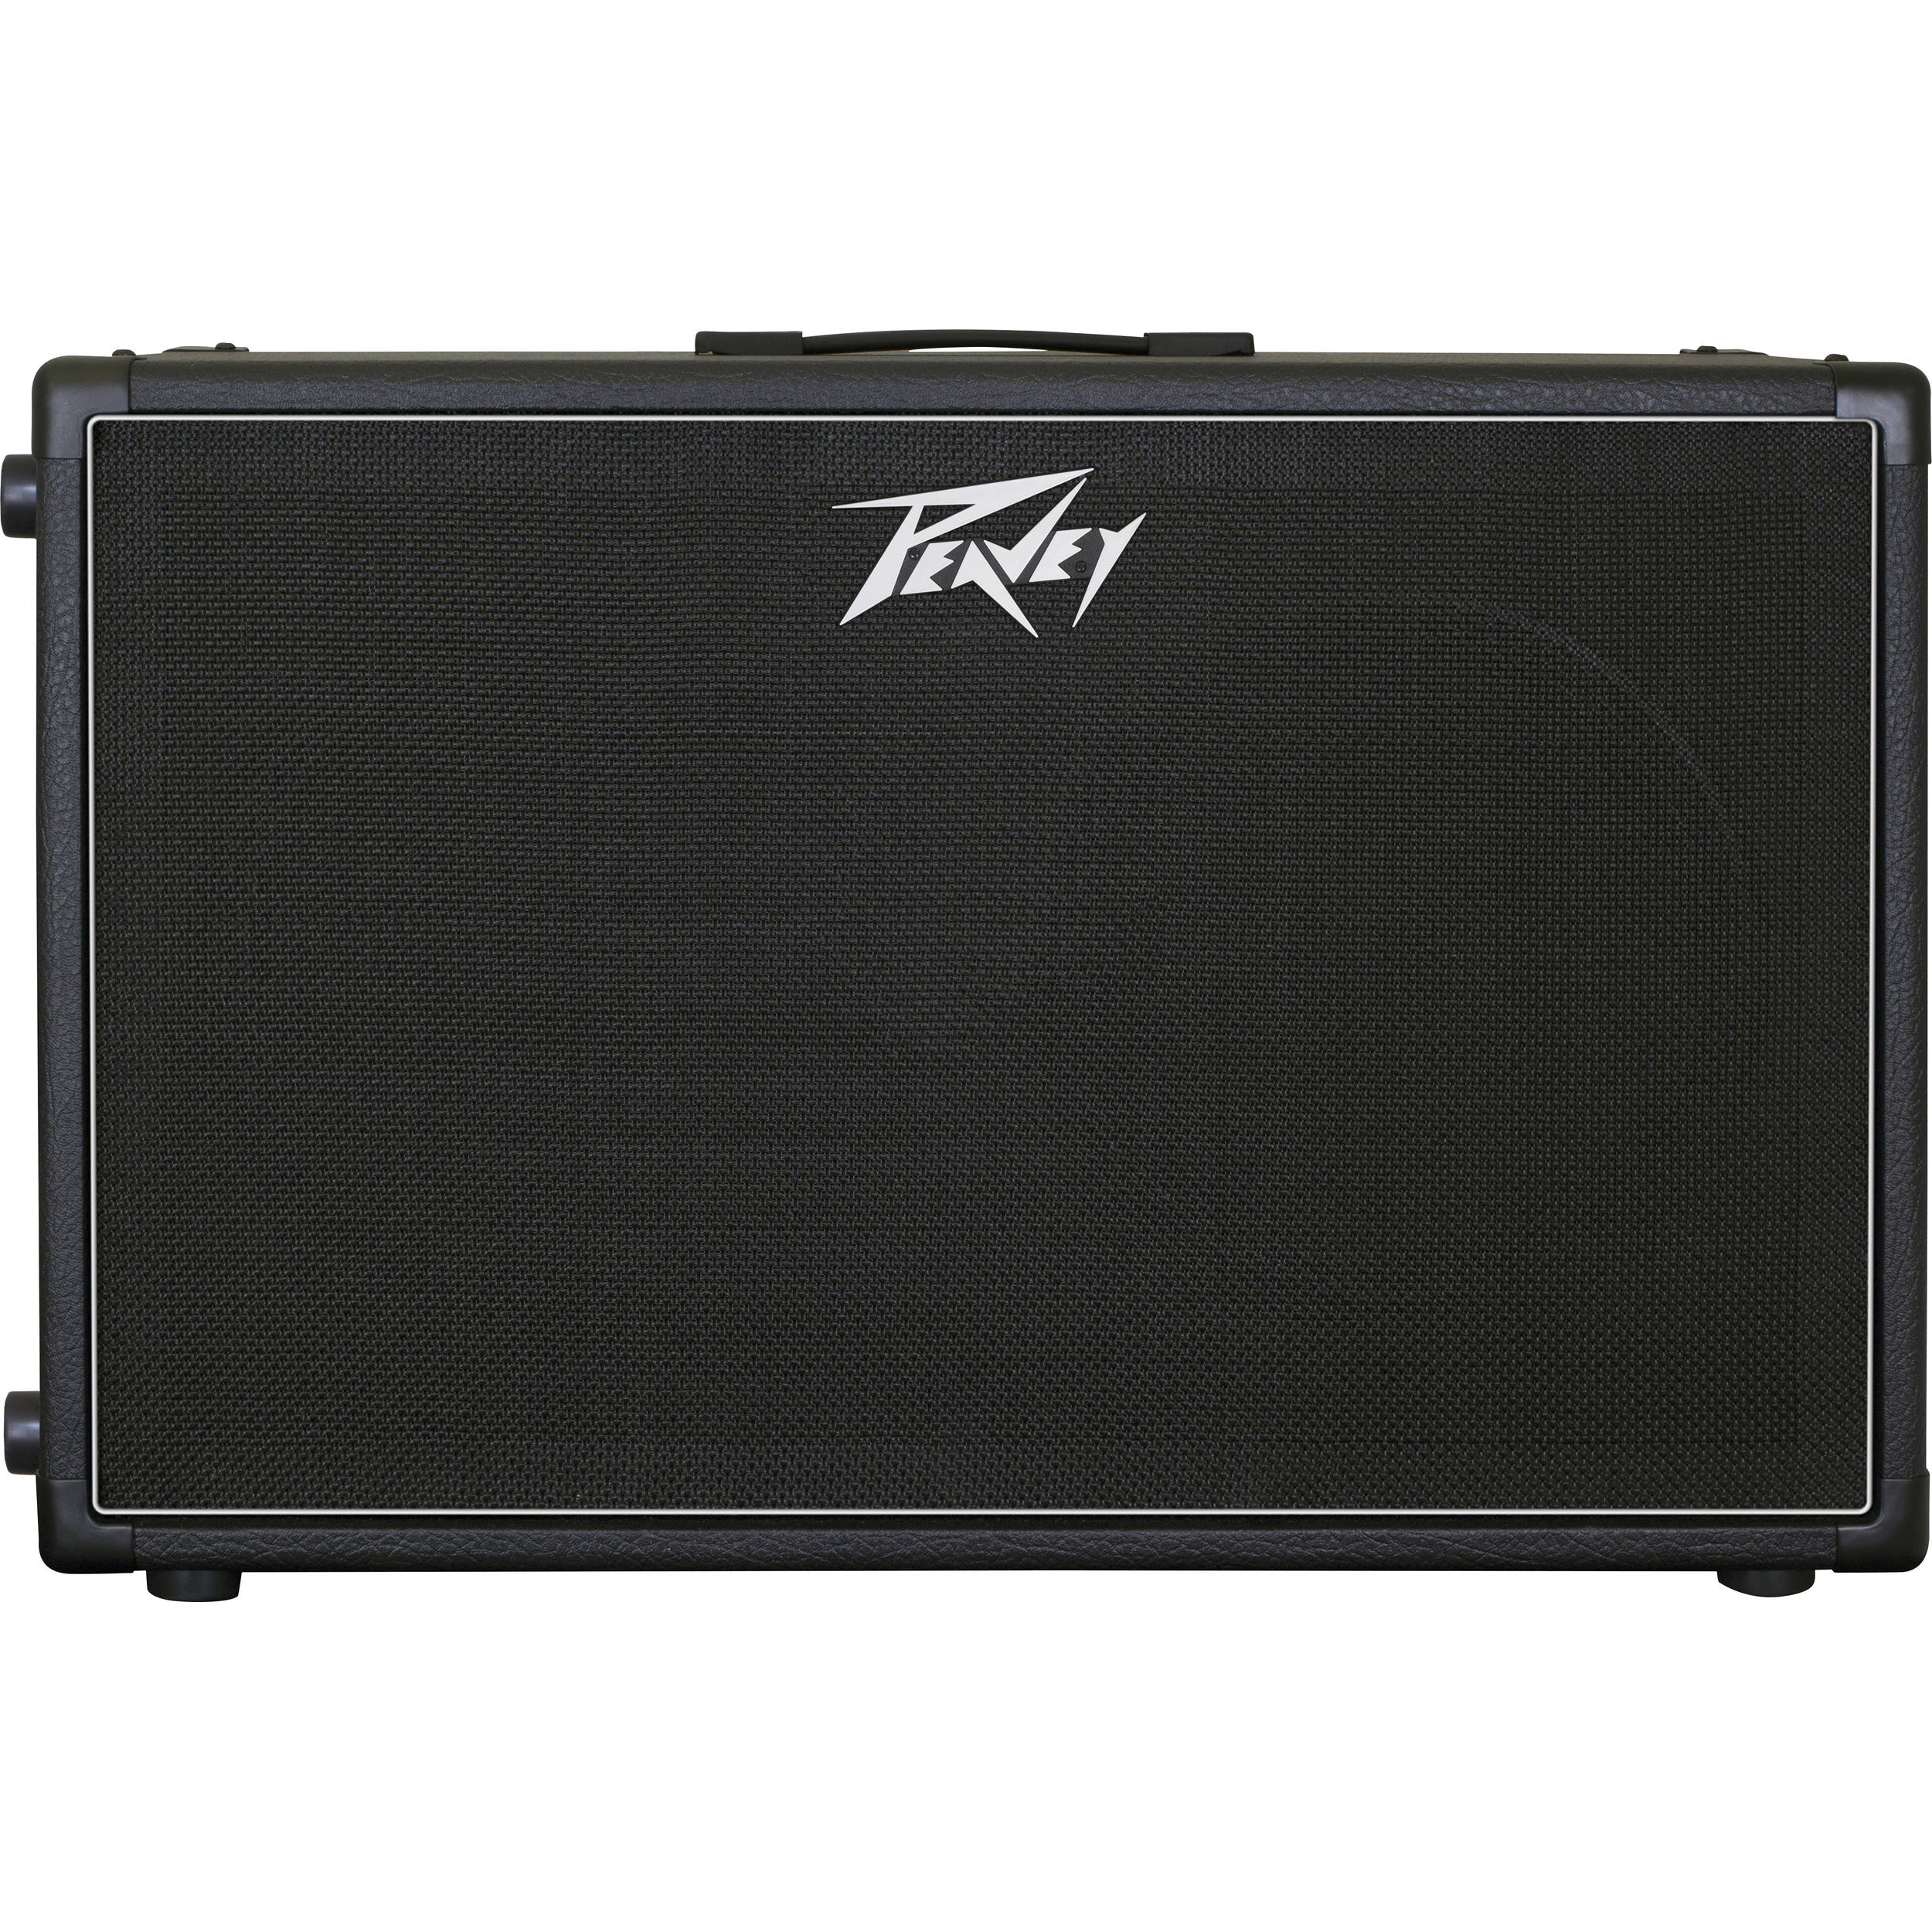 peavey 212 6 electric guitar dual 12 speaker combo amp. Black Bedroom Furniture Sets. Home Design Ideas